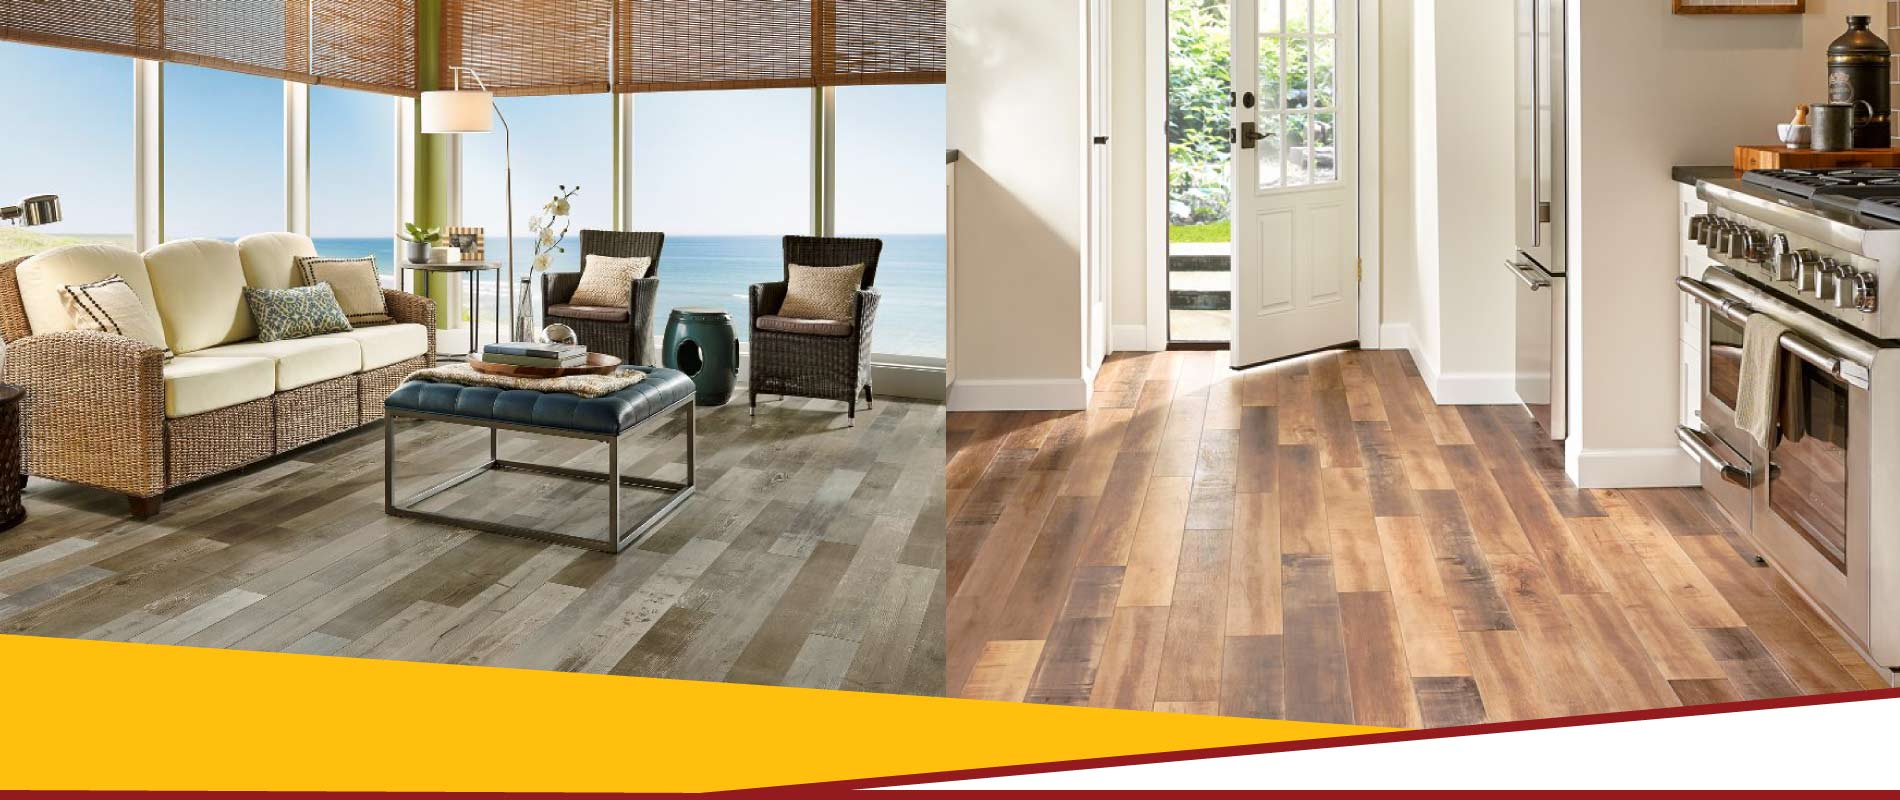 View of laminate flooring